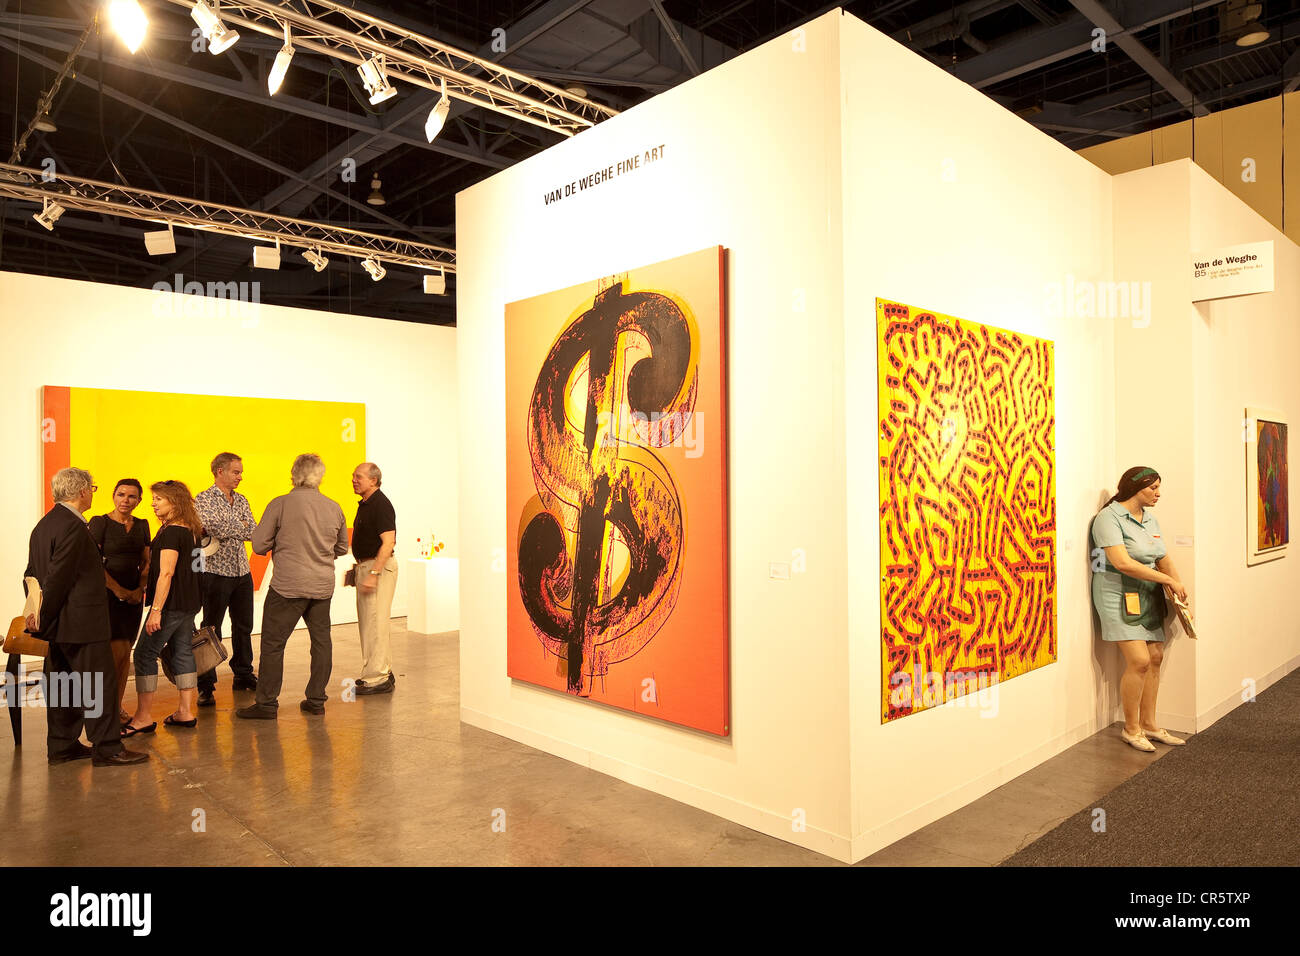 Art Basel Miami Beach Stock Photos & Art Basel Miami Beach Stock ...